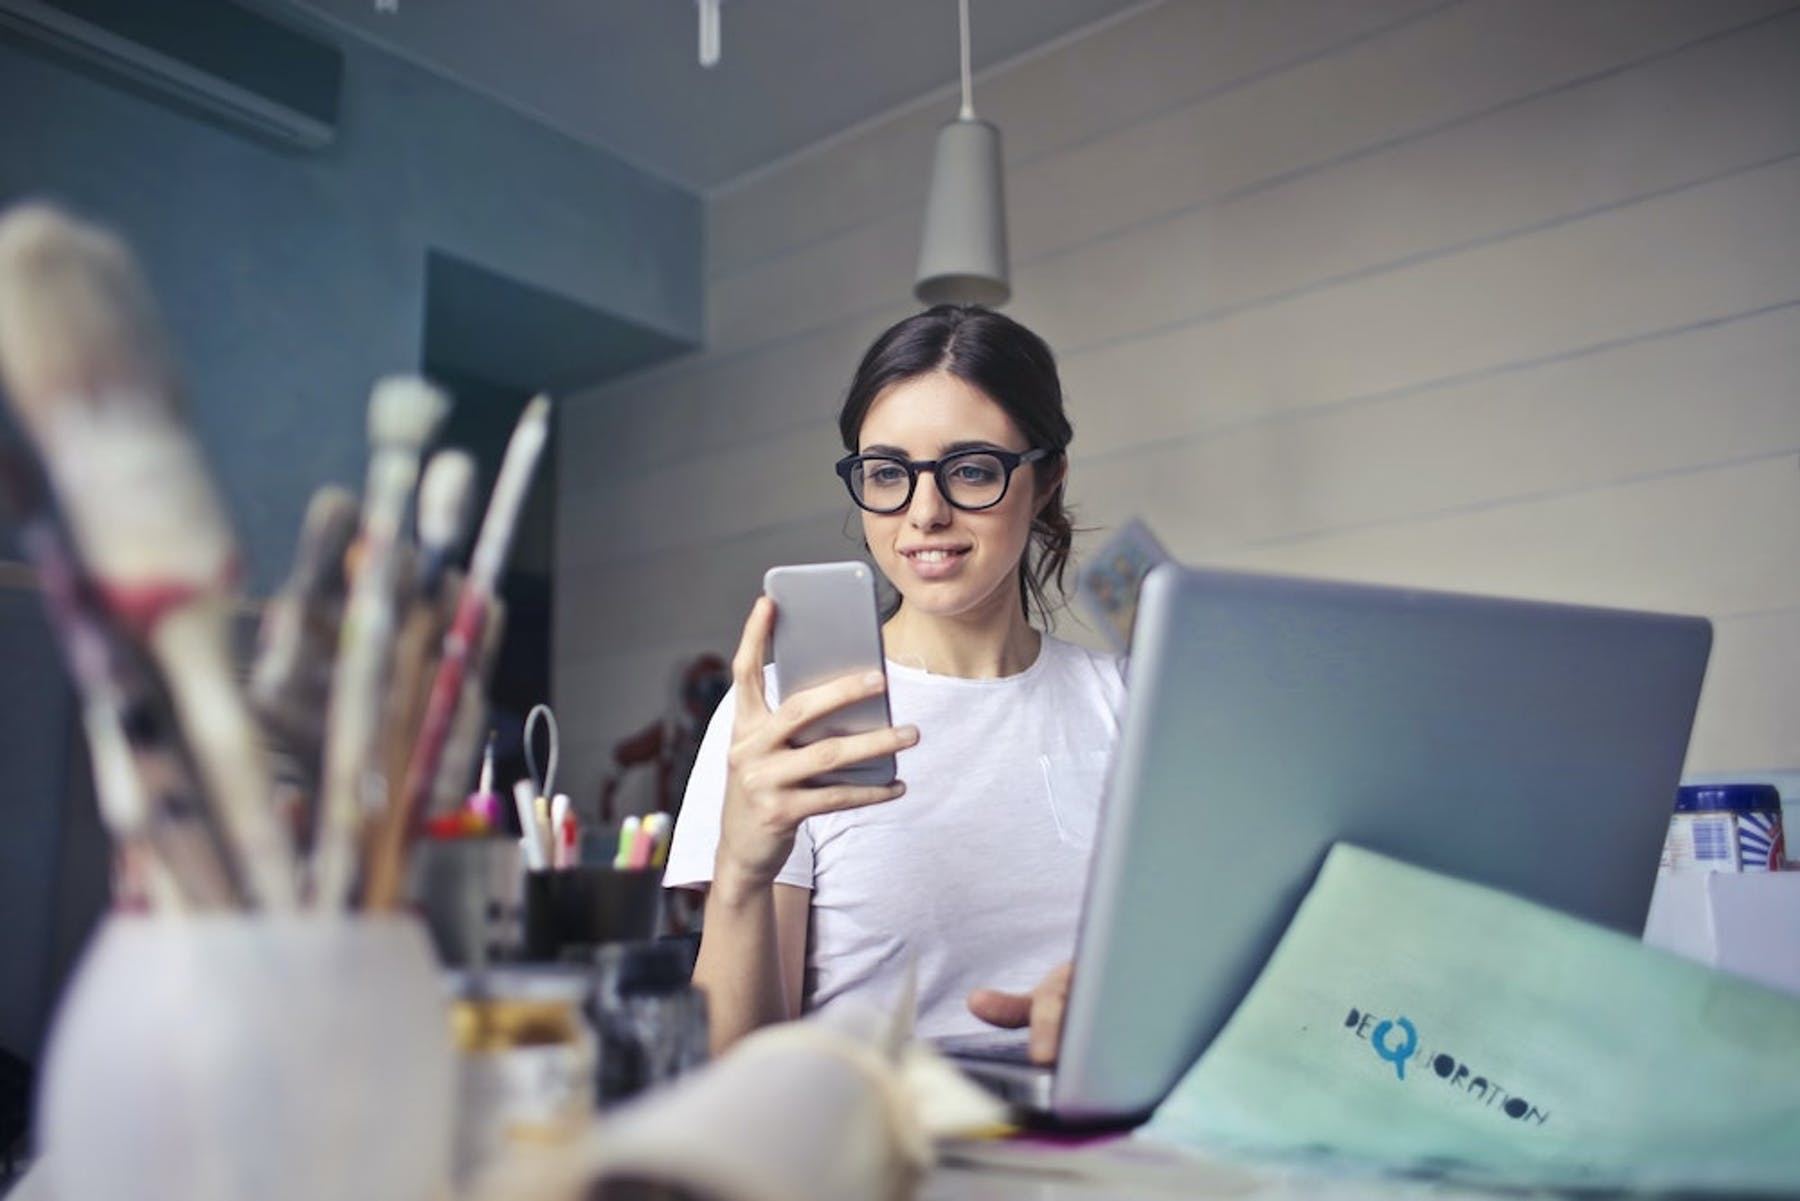 girl on phone at computer